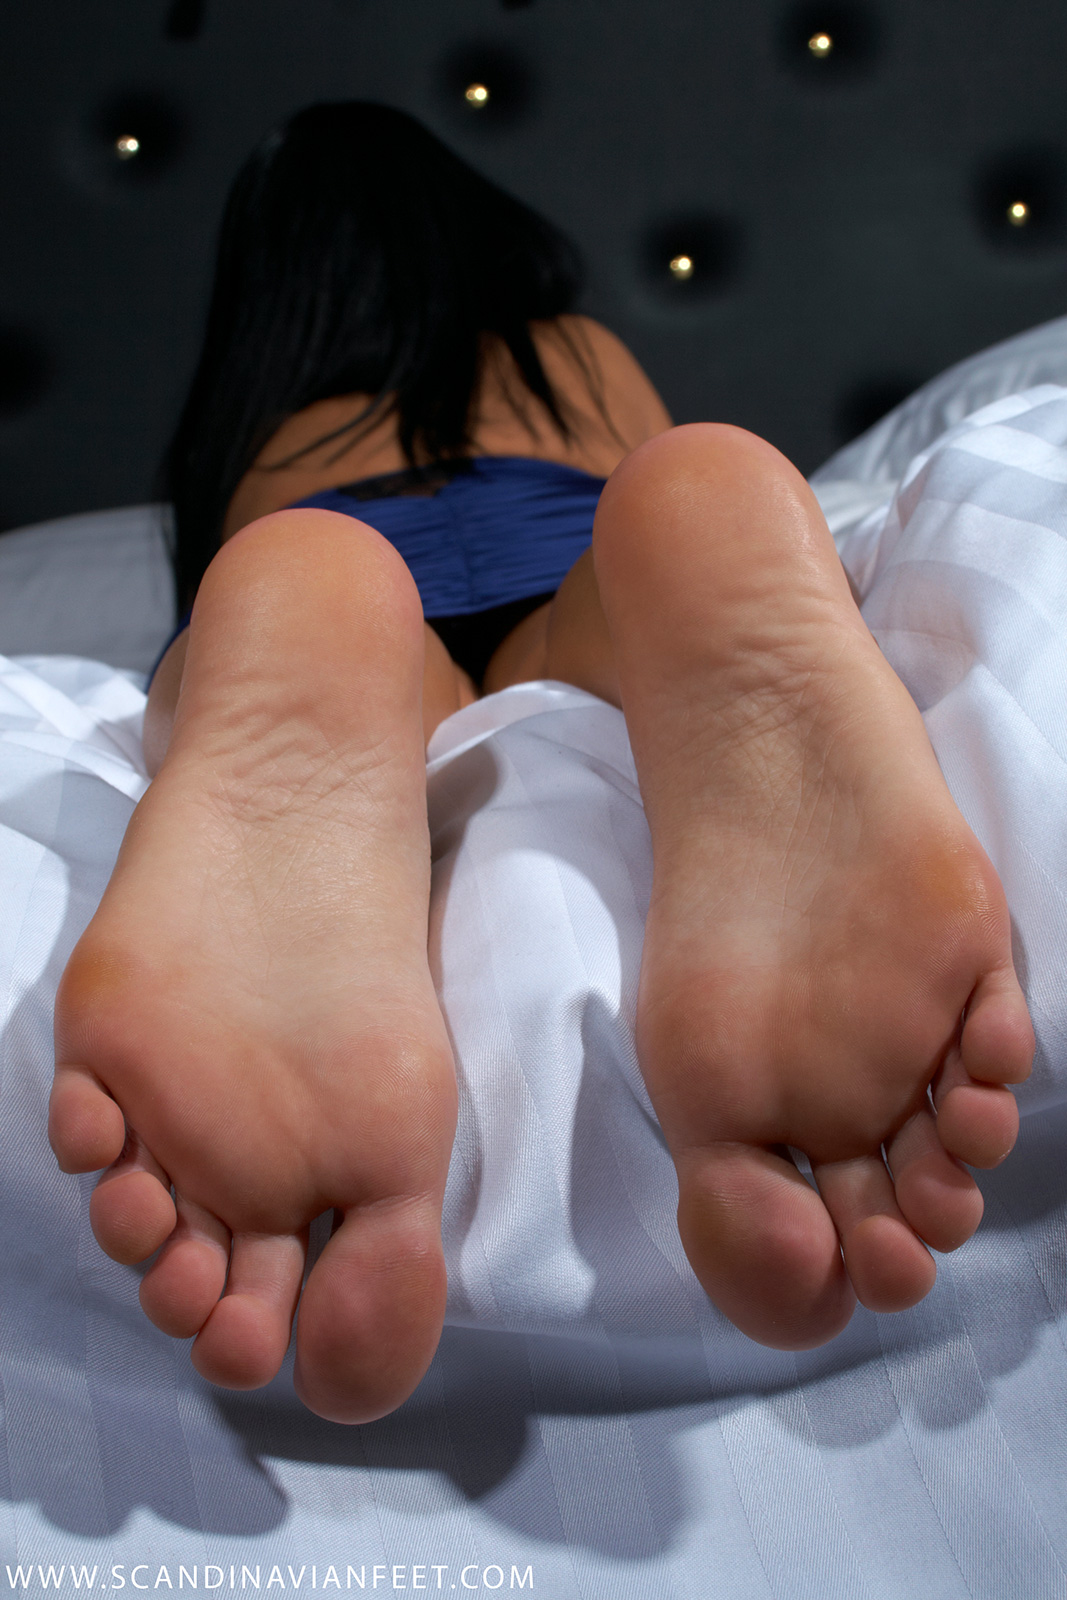 Foot fetish soles toes footjob handjob simulation 10